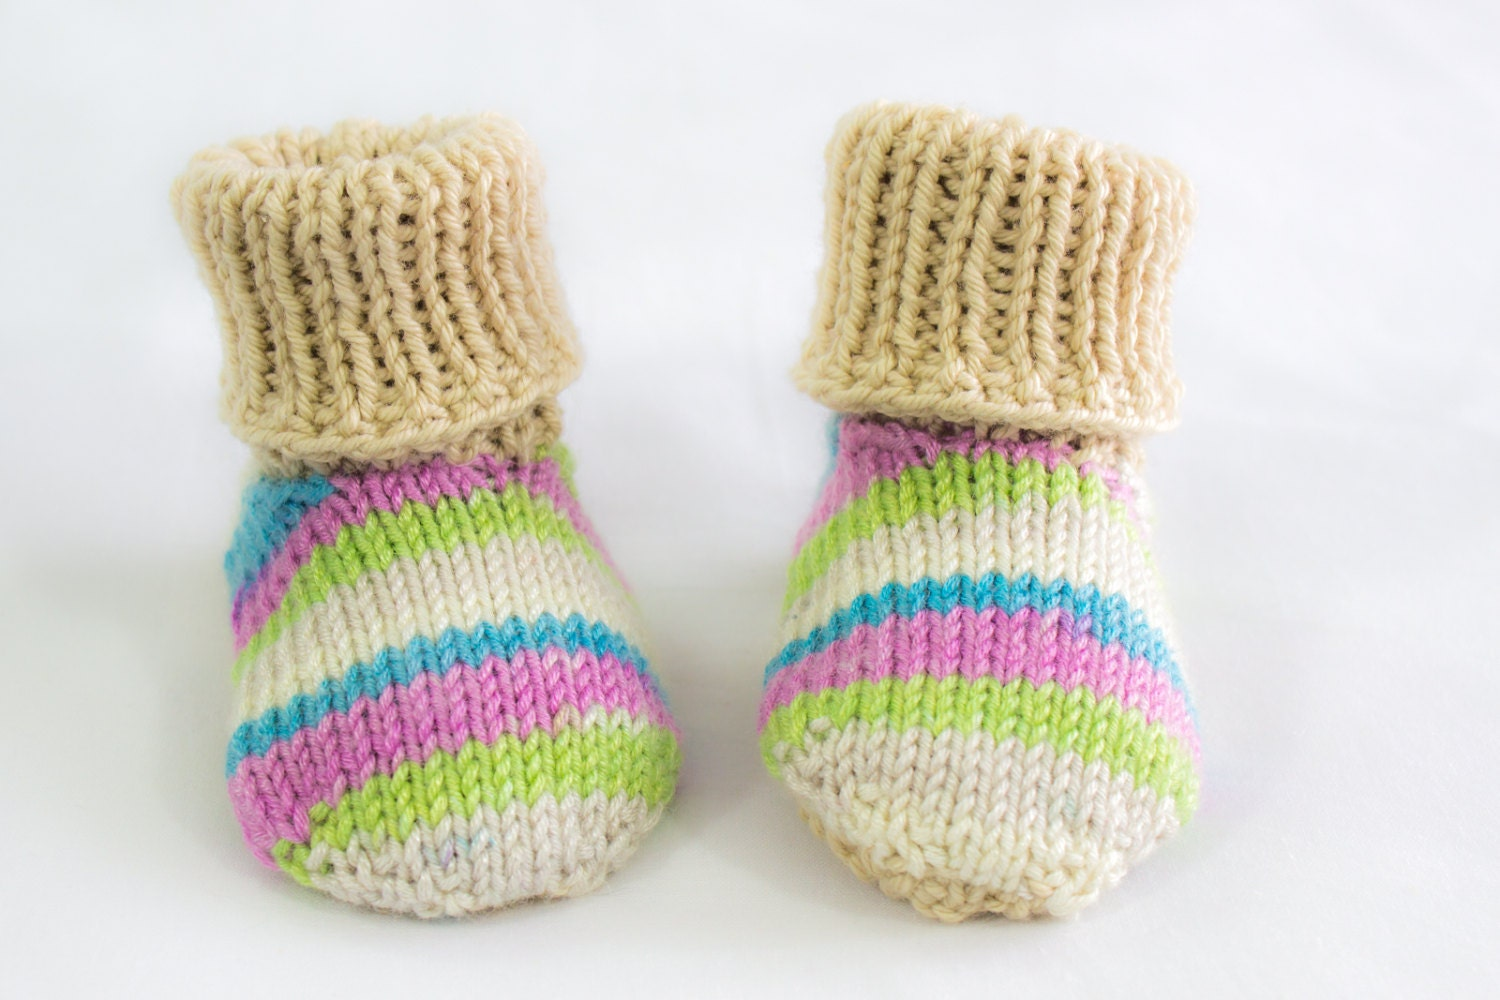 KNITTING PATTERNToddler Baby Slippers Baby Slippers